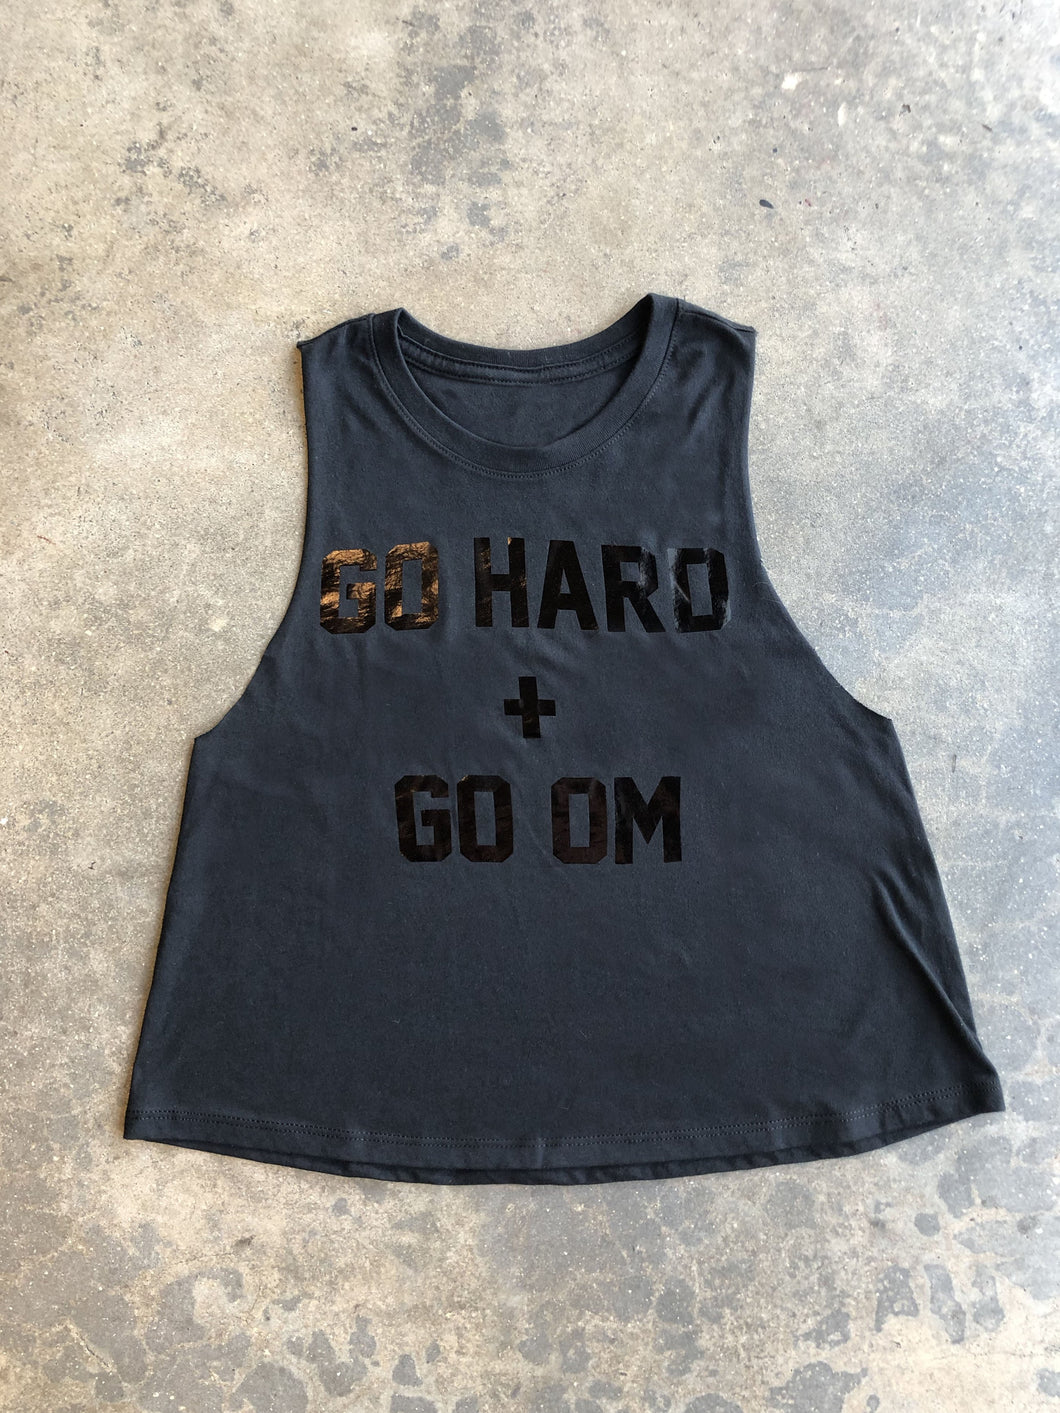 Go Hard & Go Om - Cropped Muscle Tank